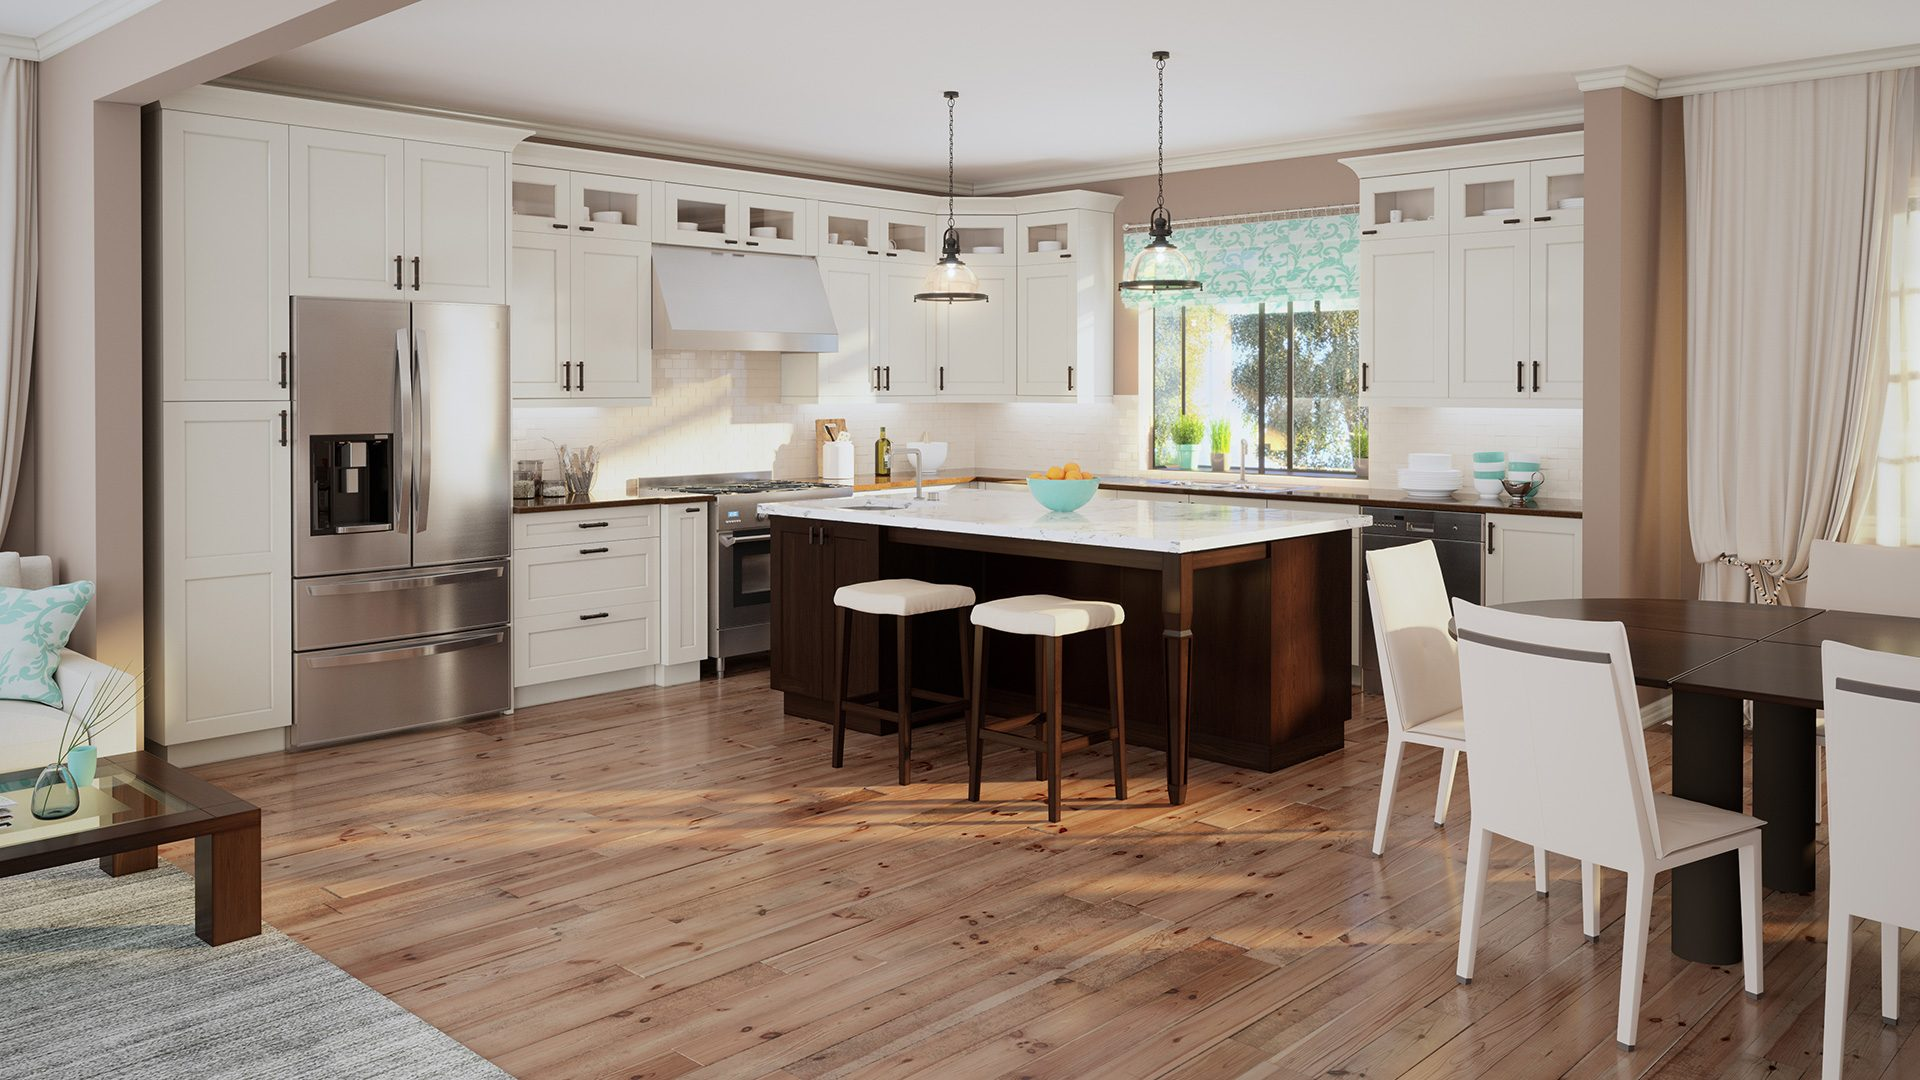 Shaker cabinets for a classic kitchen